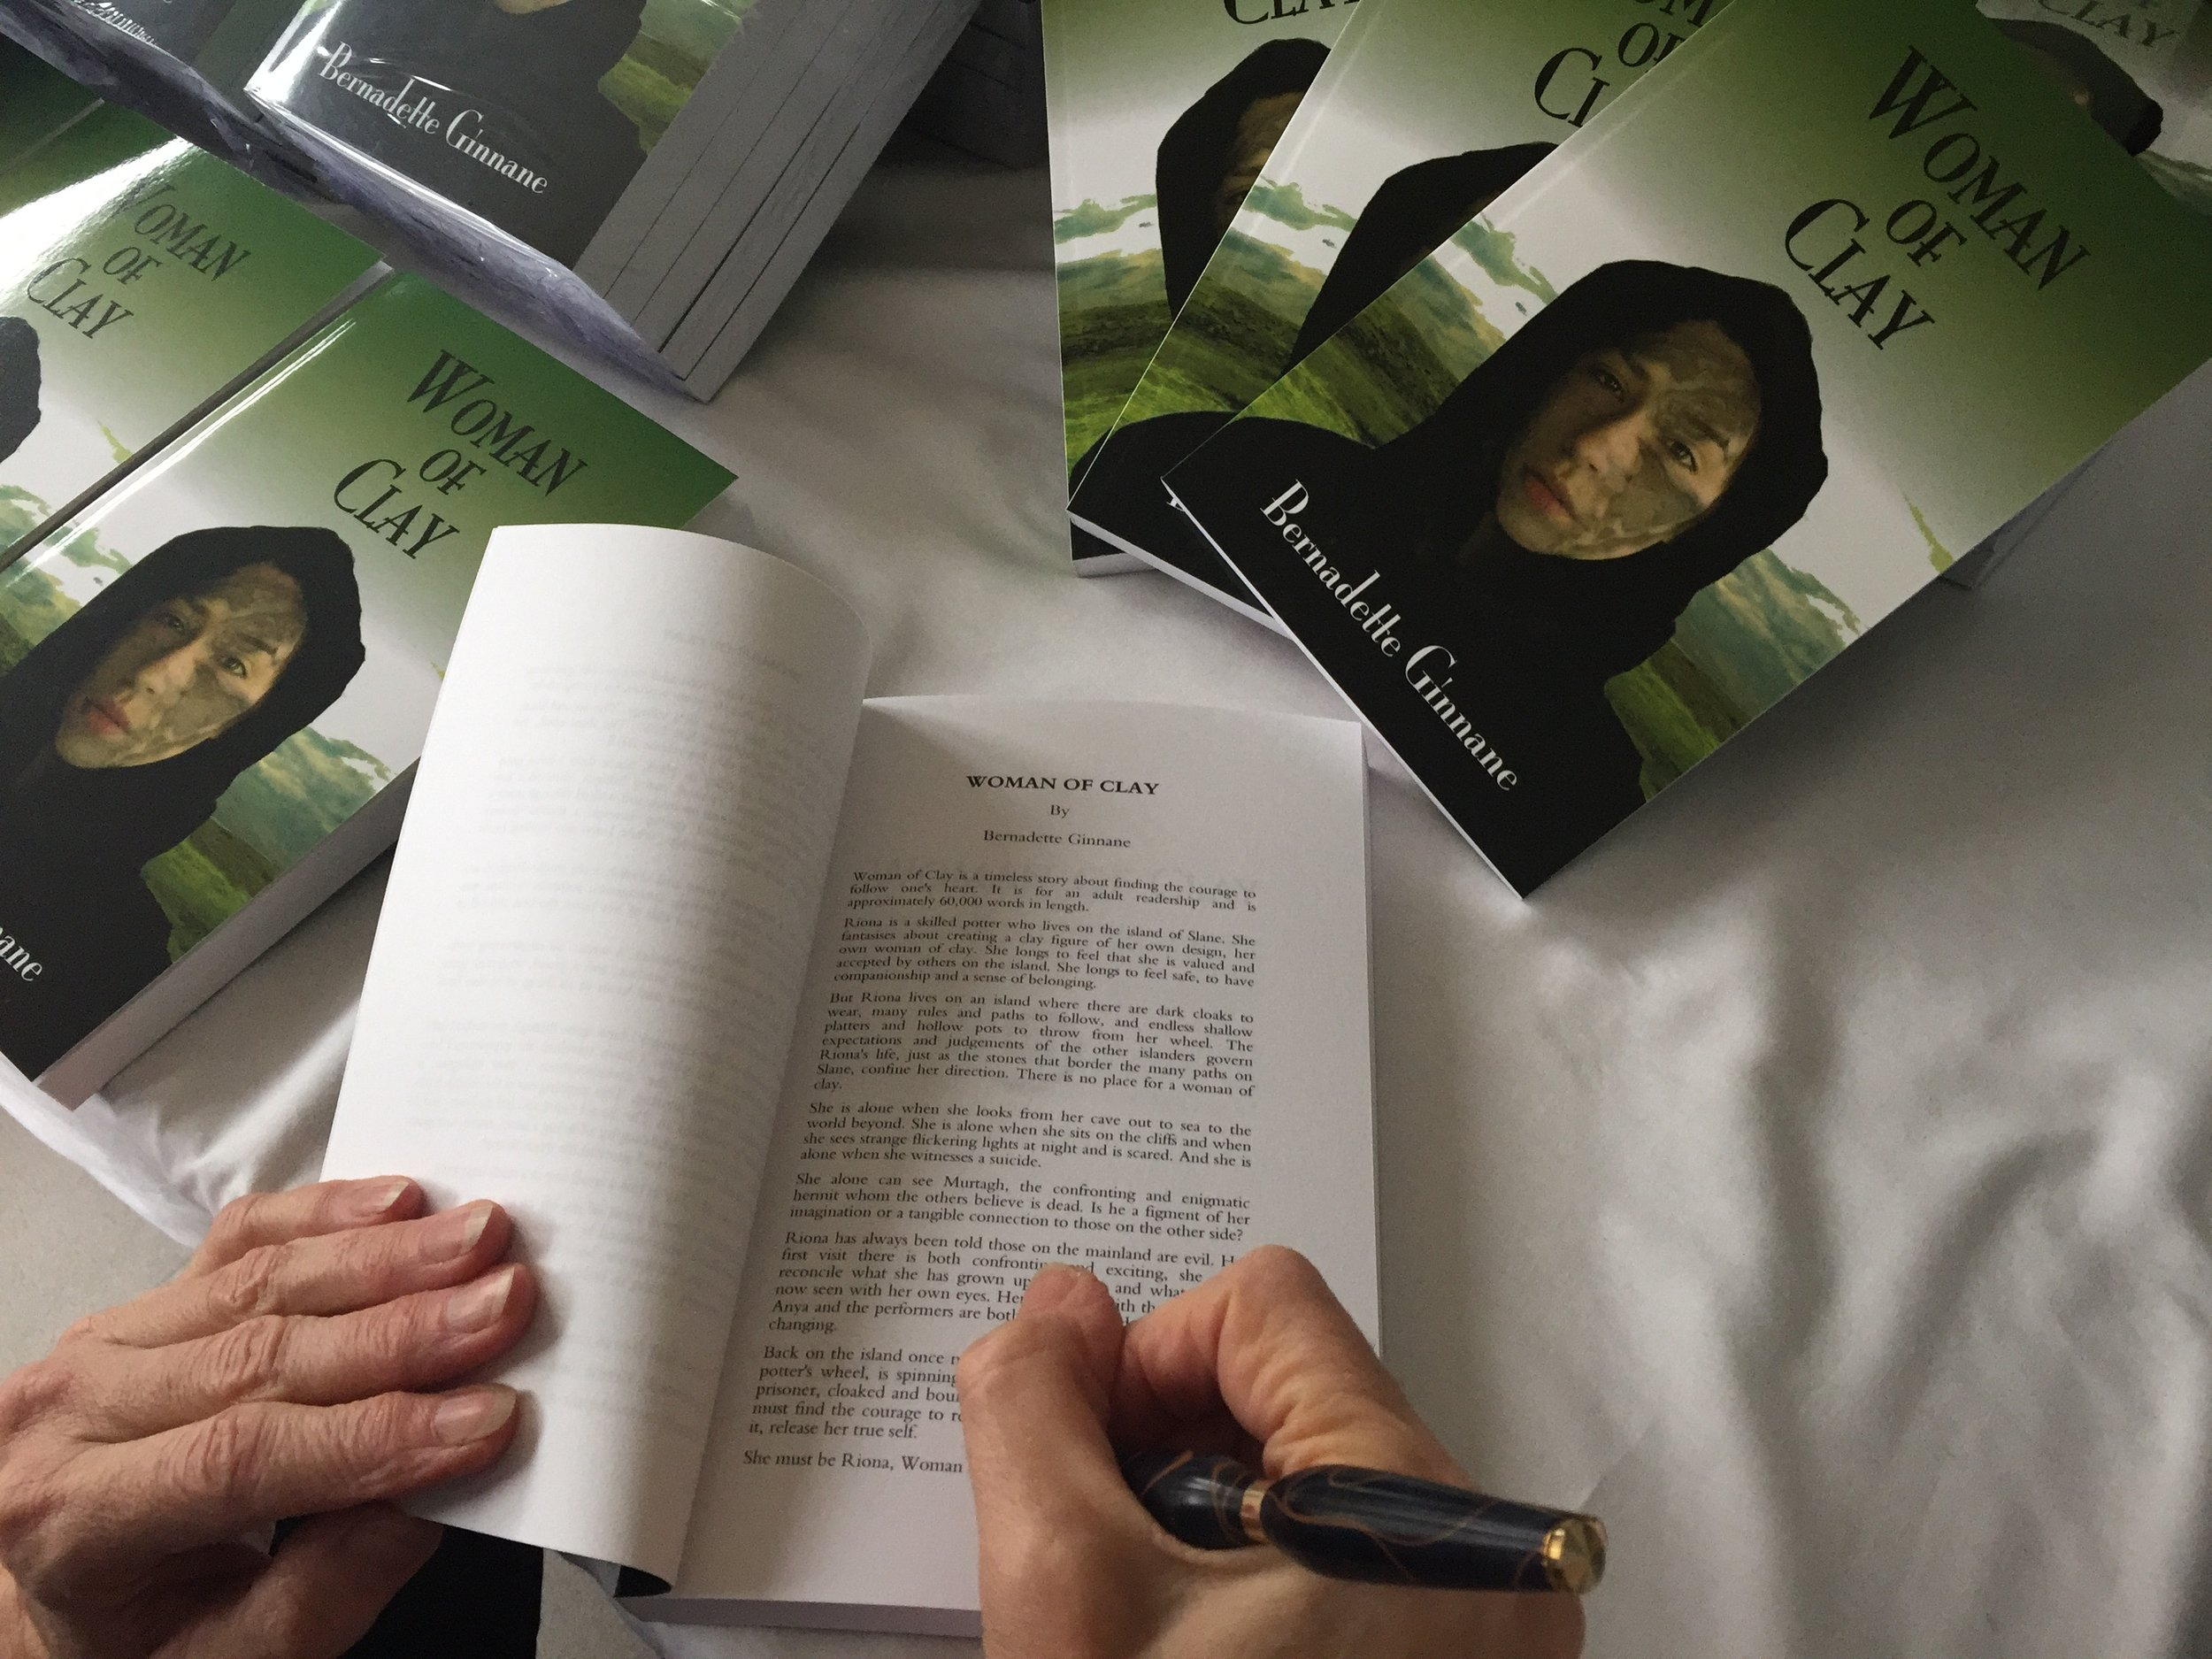 Woman of Clay - Buy now via Kindle or order your very own signed hard copy by clicking here